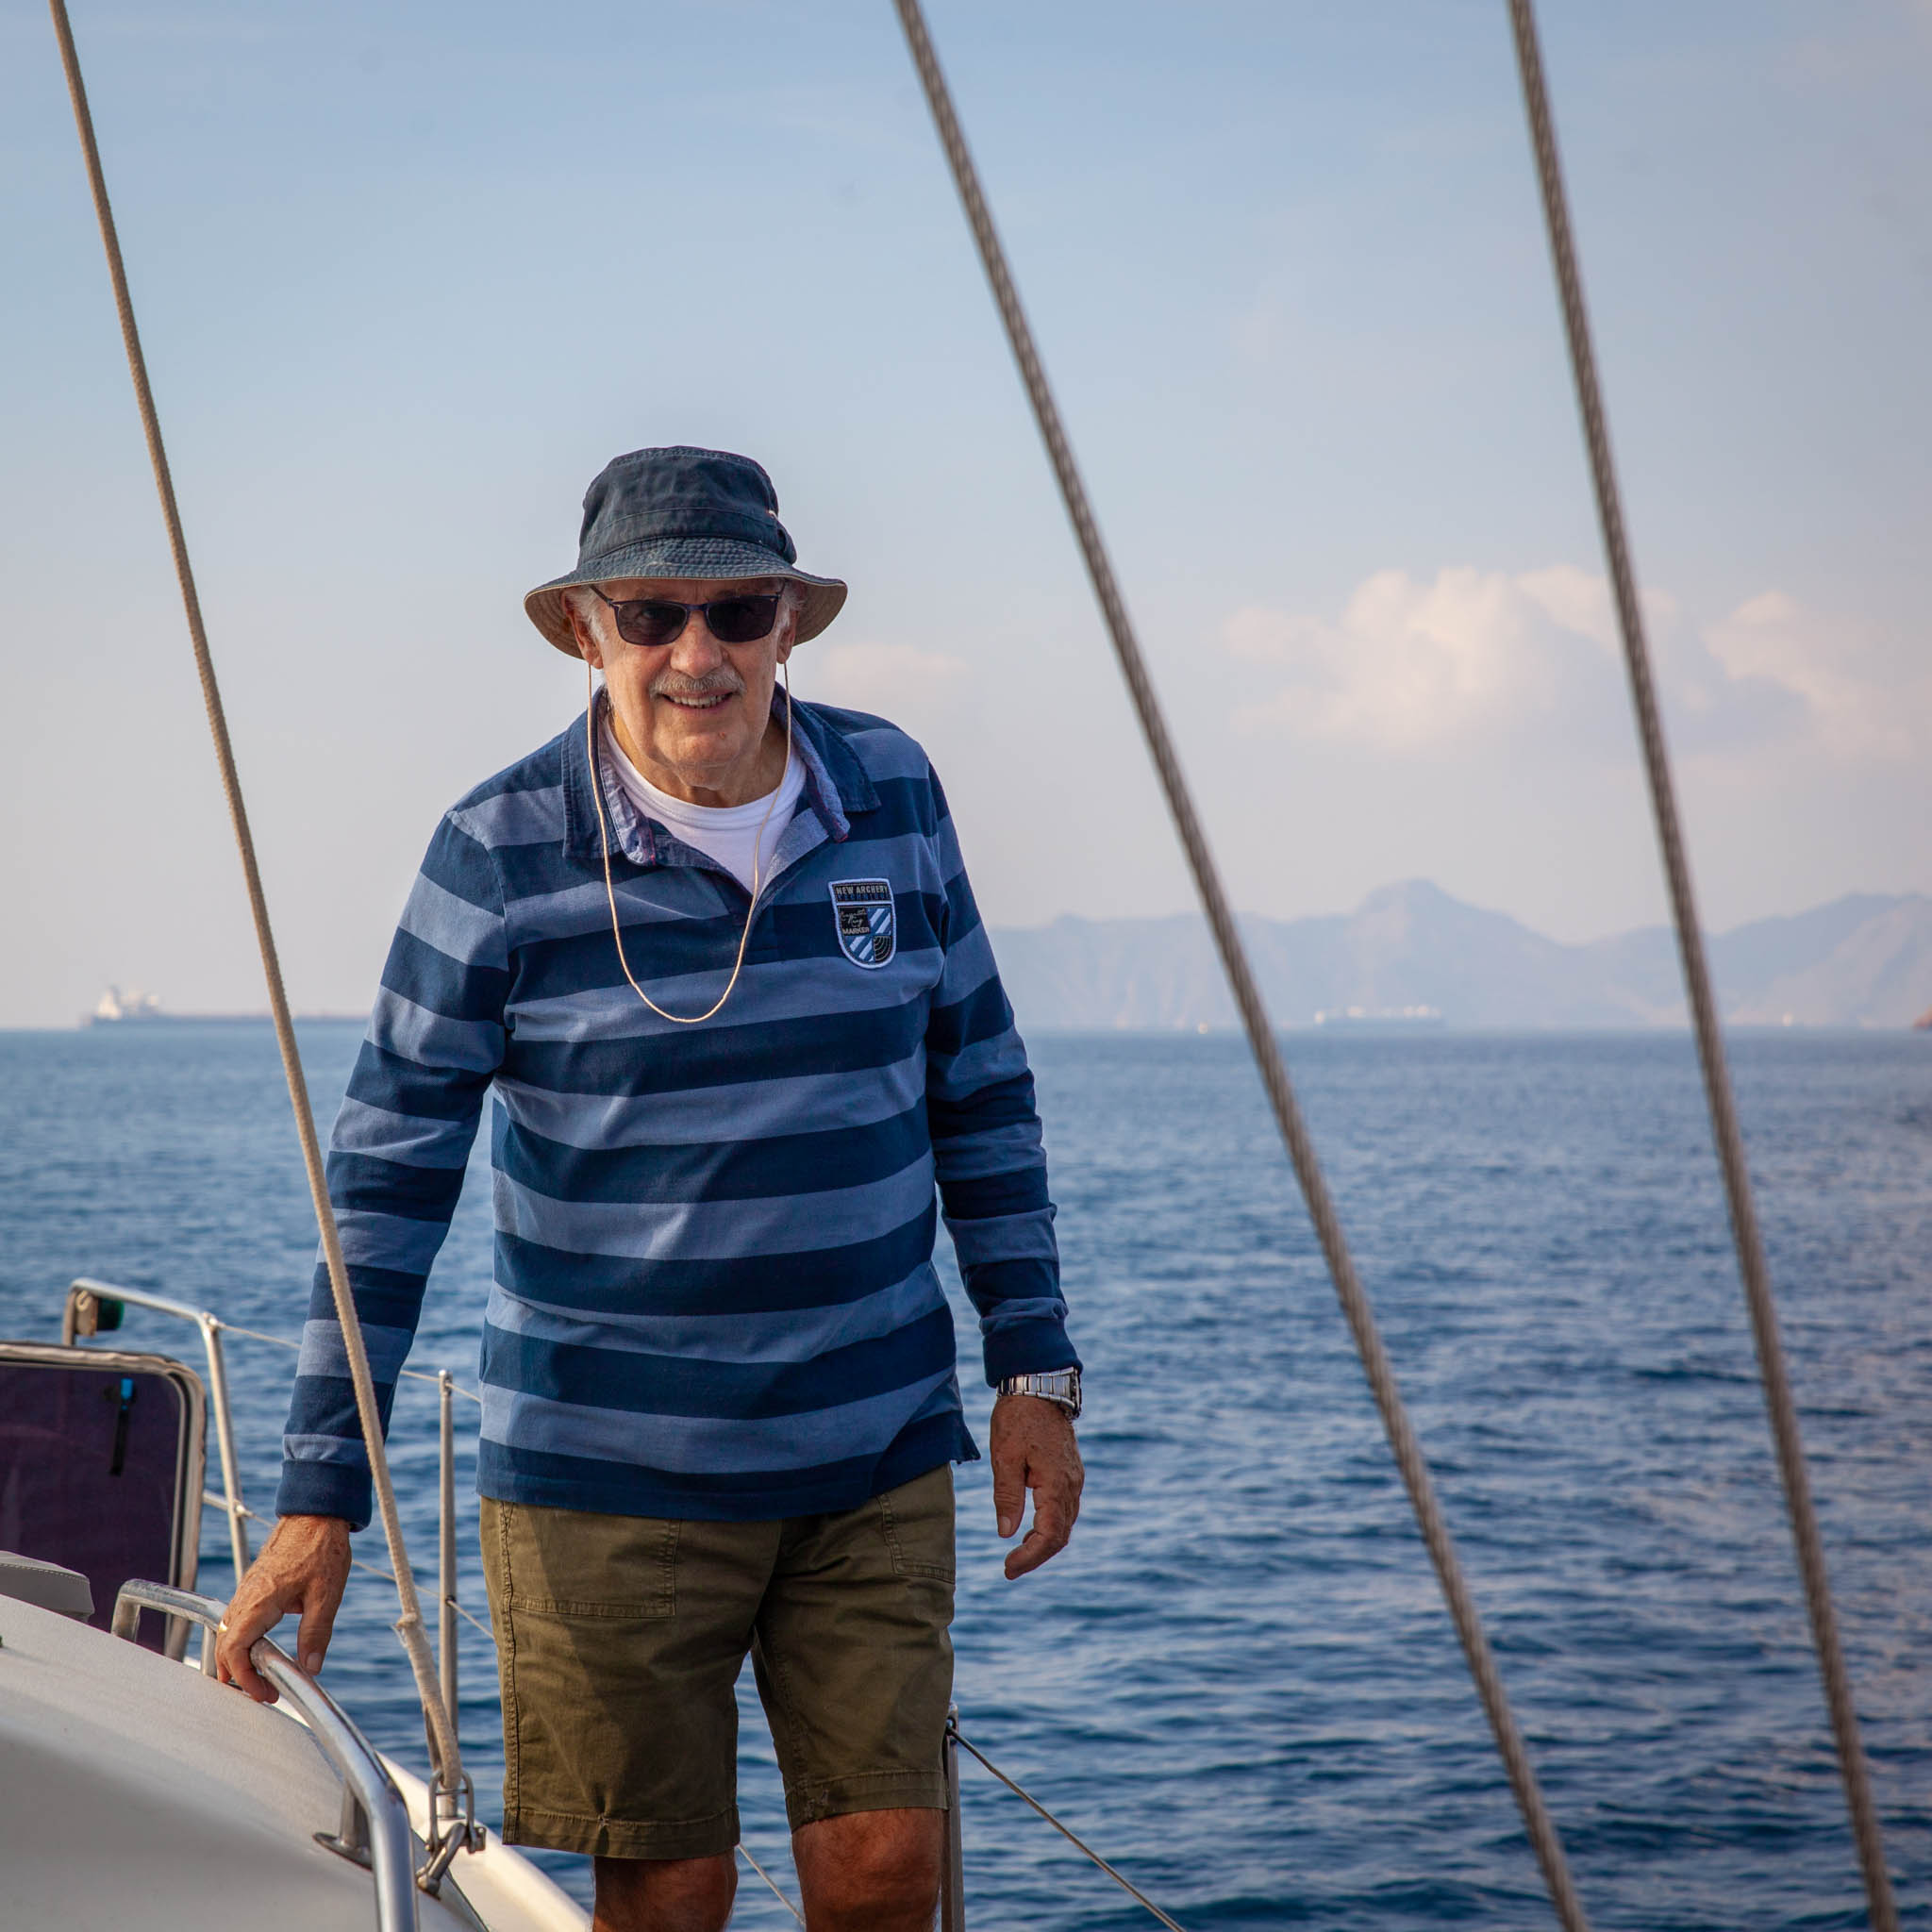 Michael - Michael's father. Yes they have exactly the same name:) From him all dreams started. He  was introducing Michael jnr to sailing in his childhood. We were lucky he did agree to sail with us from Cartaghena (Spain) to Lanzarote (Canary Islands.)